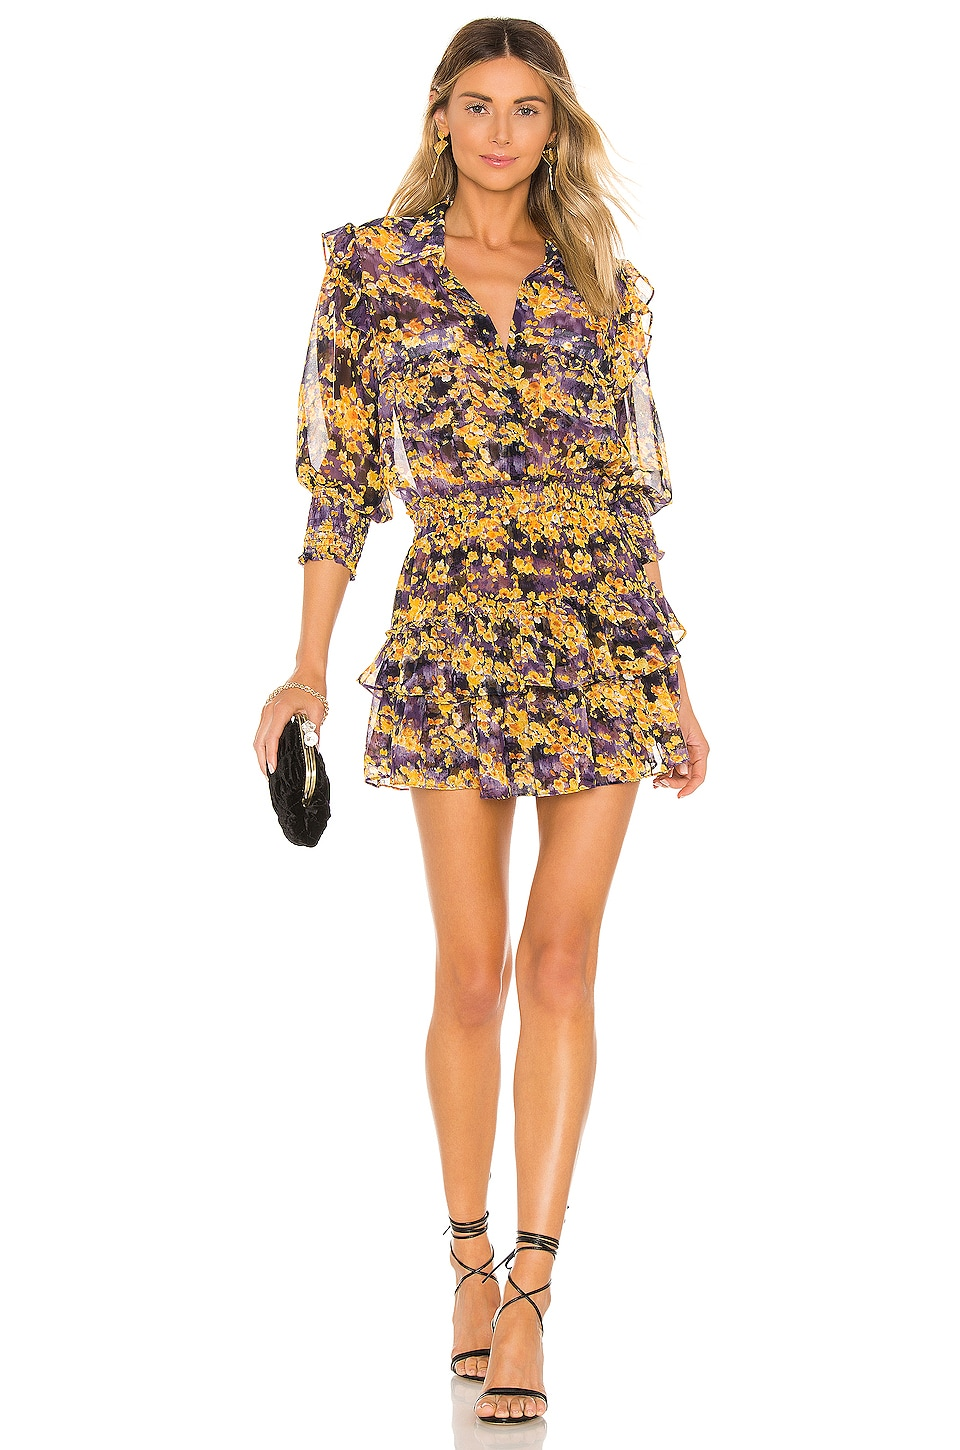 MISA Los Angeles Riona Dress in Purple Yellow Floral